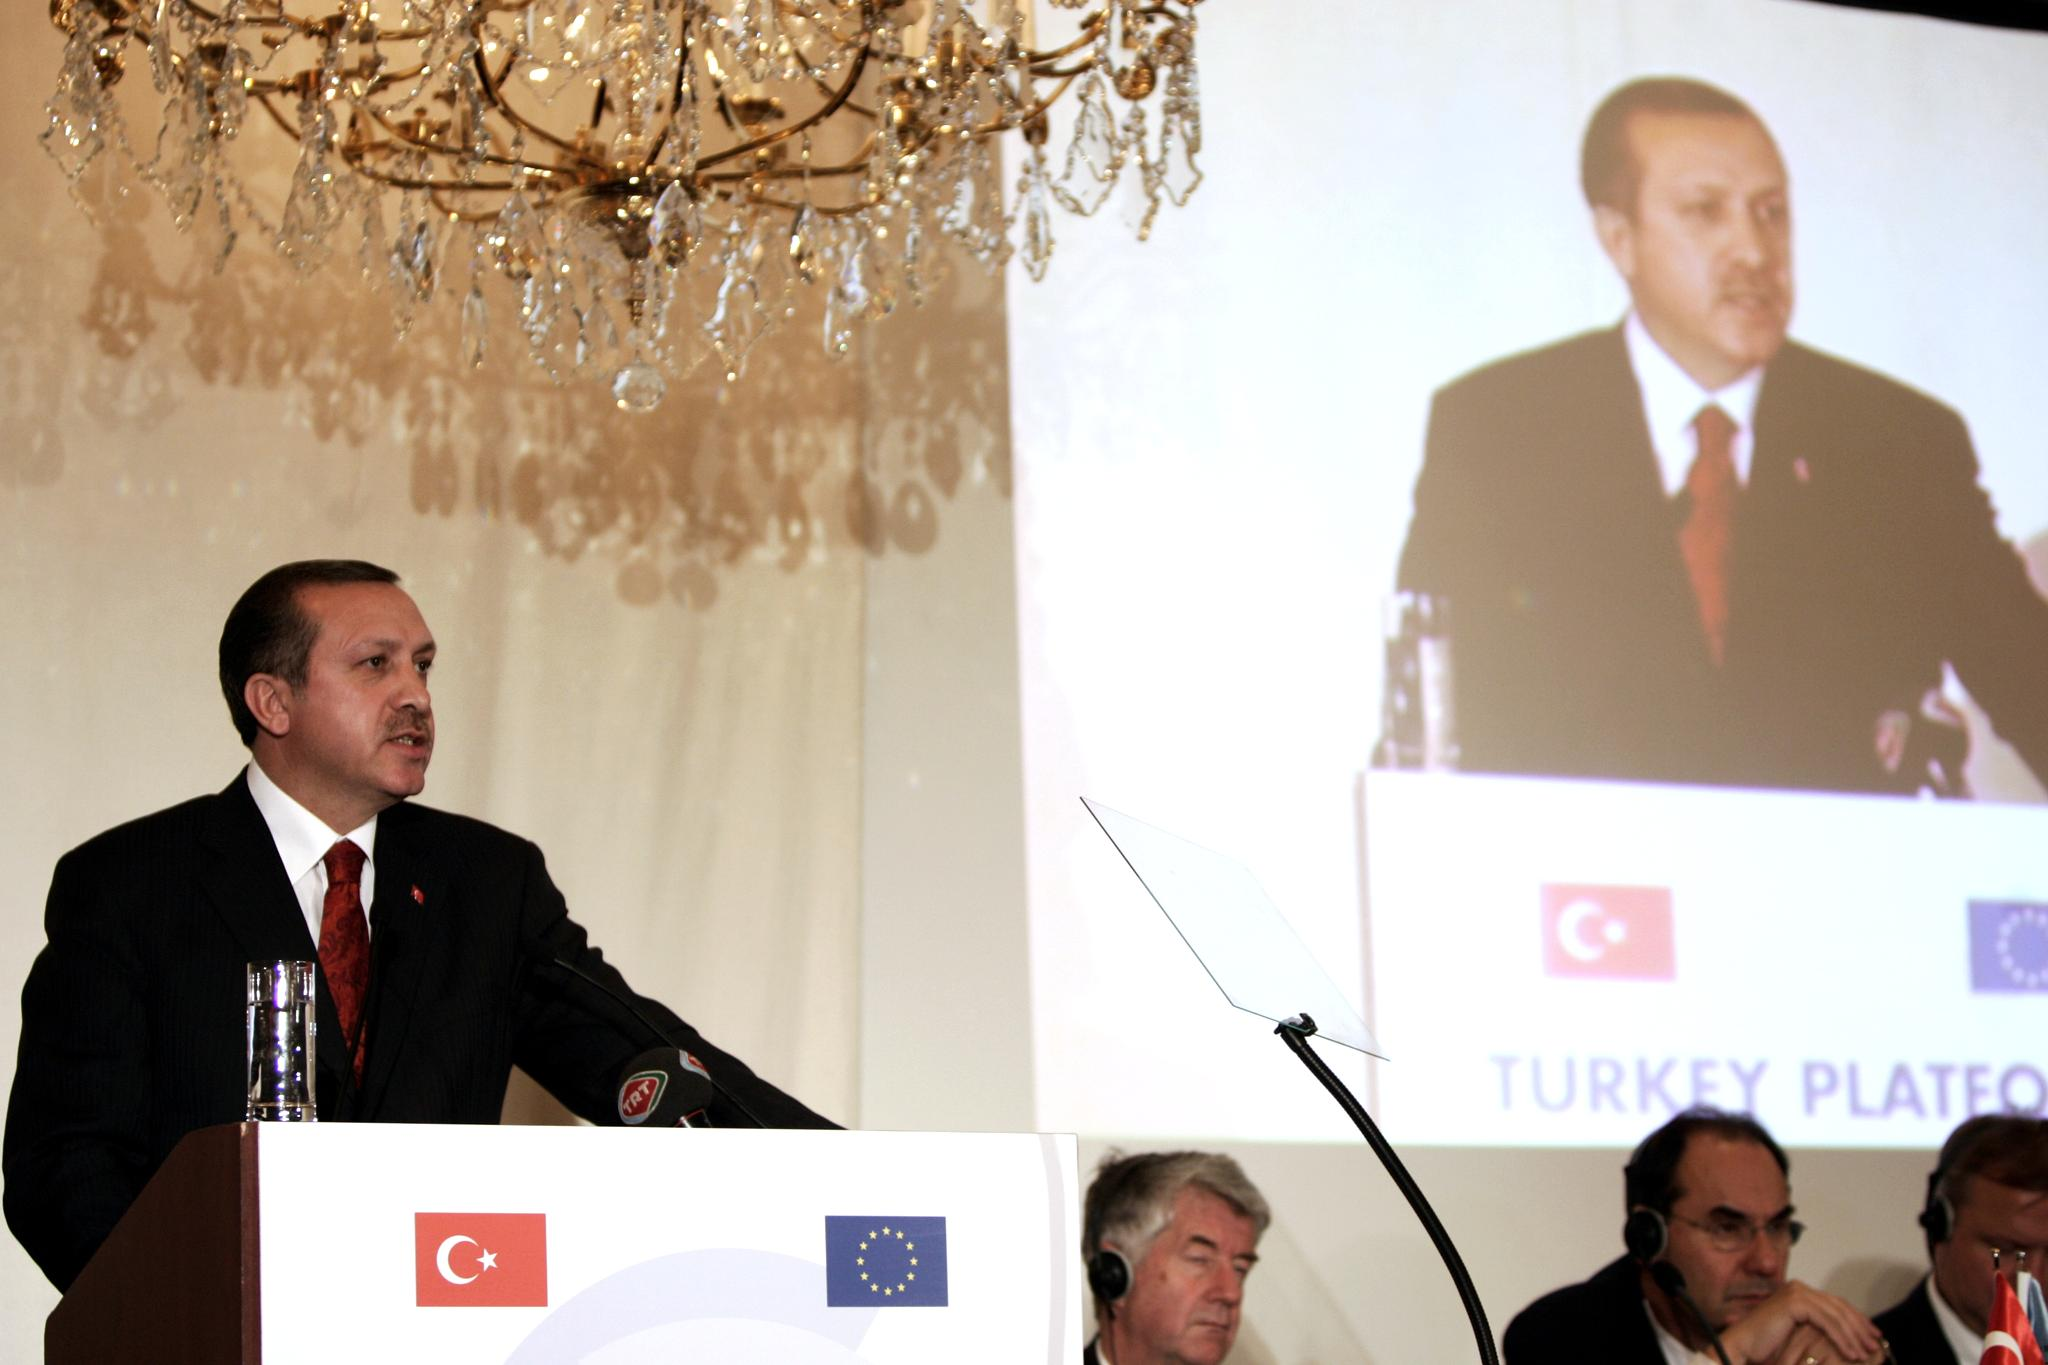 Recep Tayyip Erdogan gives a speech at the Turkish Platform seminar, 10 December 2004, in Brussels (AFP)